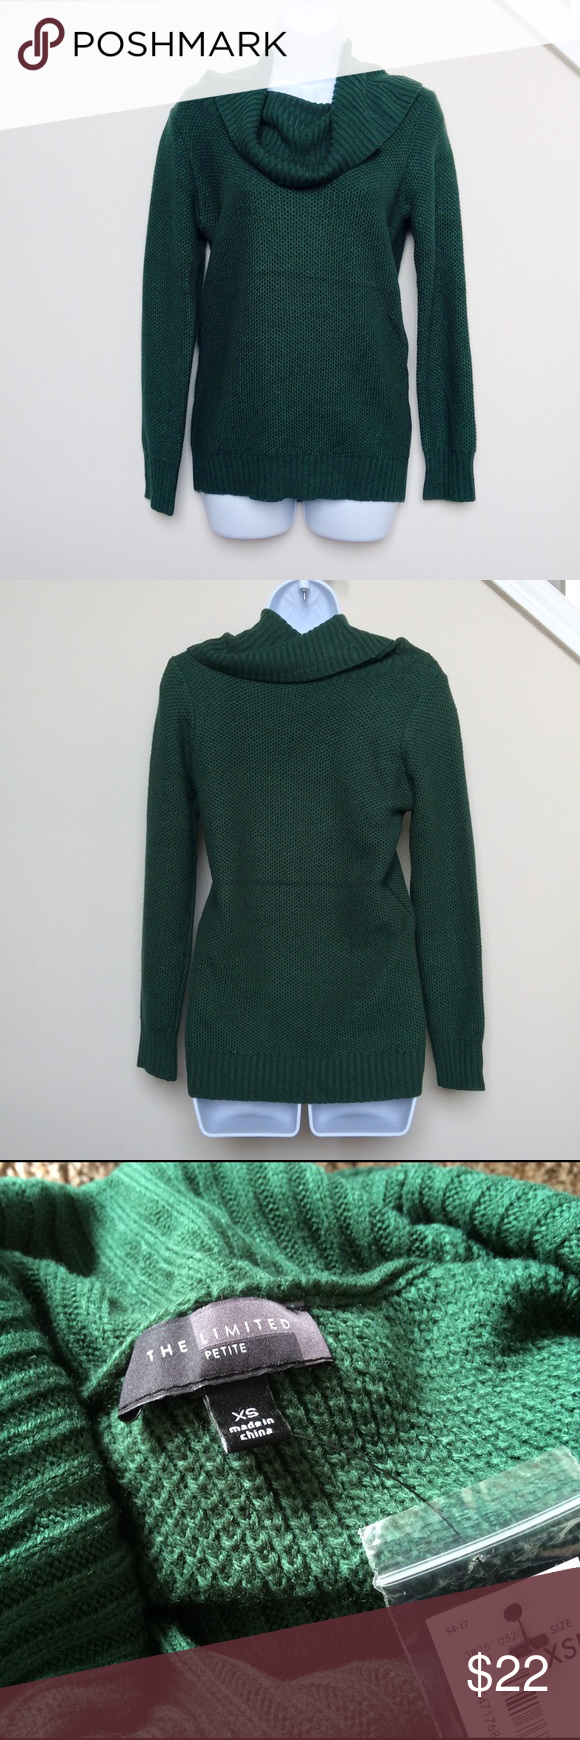 Green Cowl Neck Sweater, XSmall Petite Brand new with tags dark ...